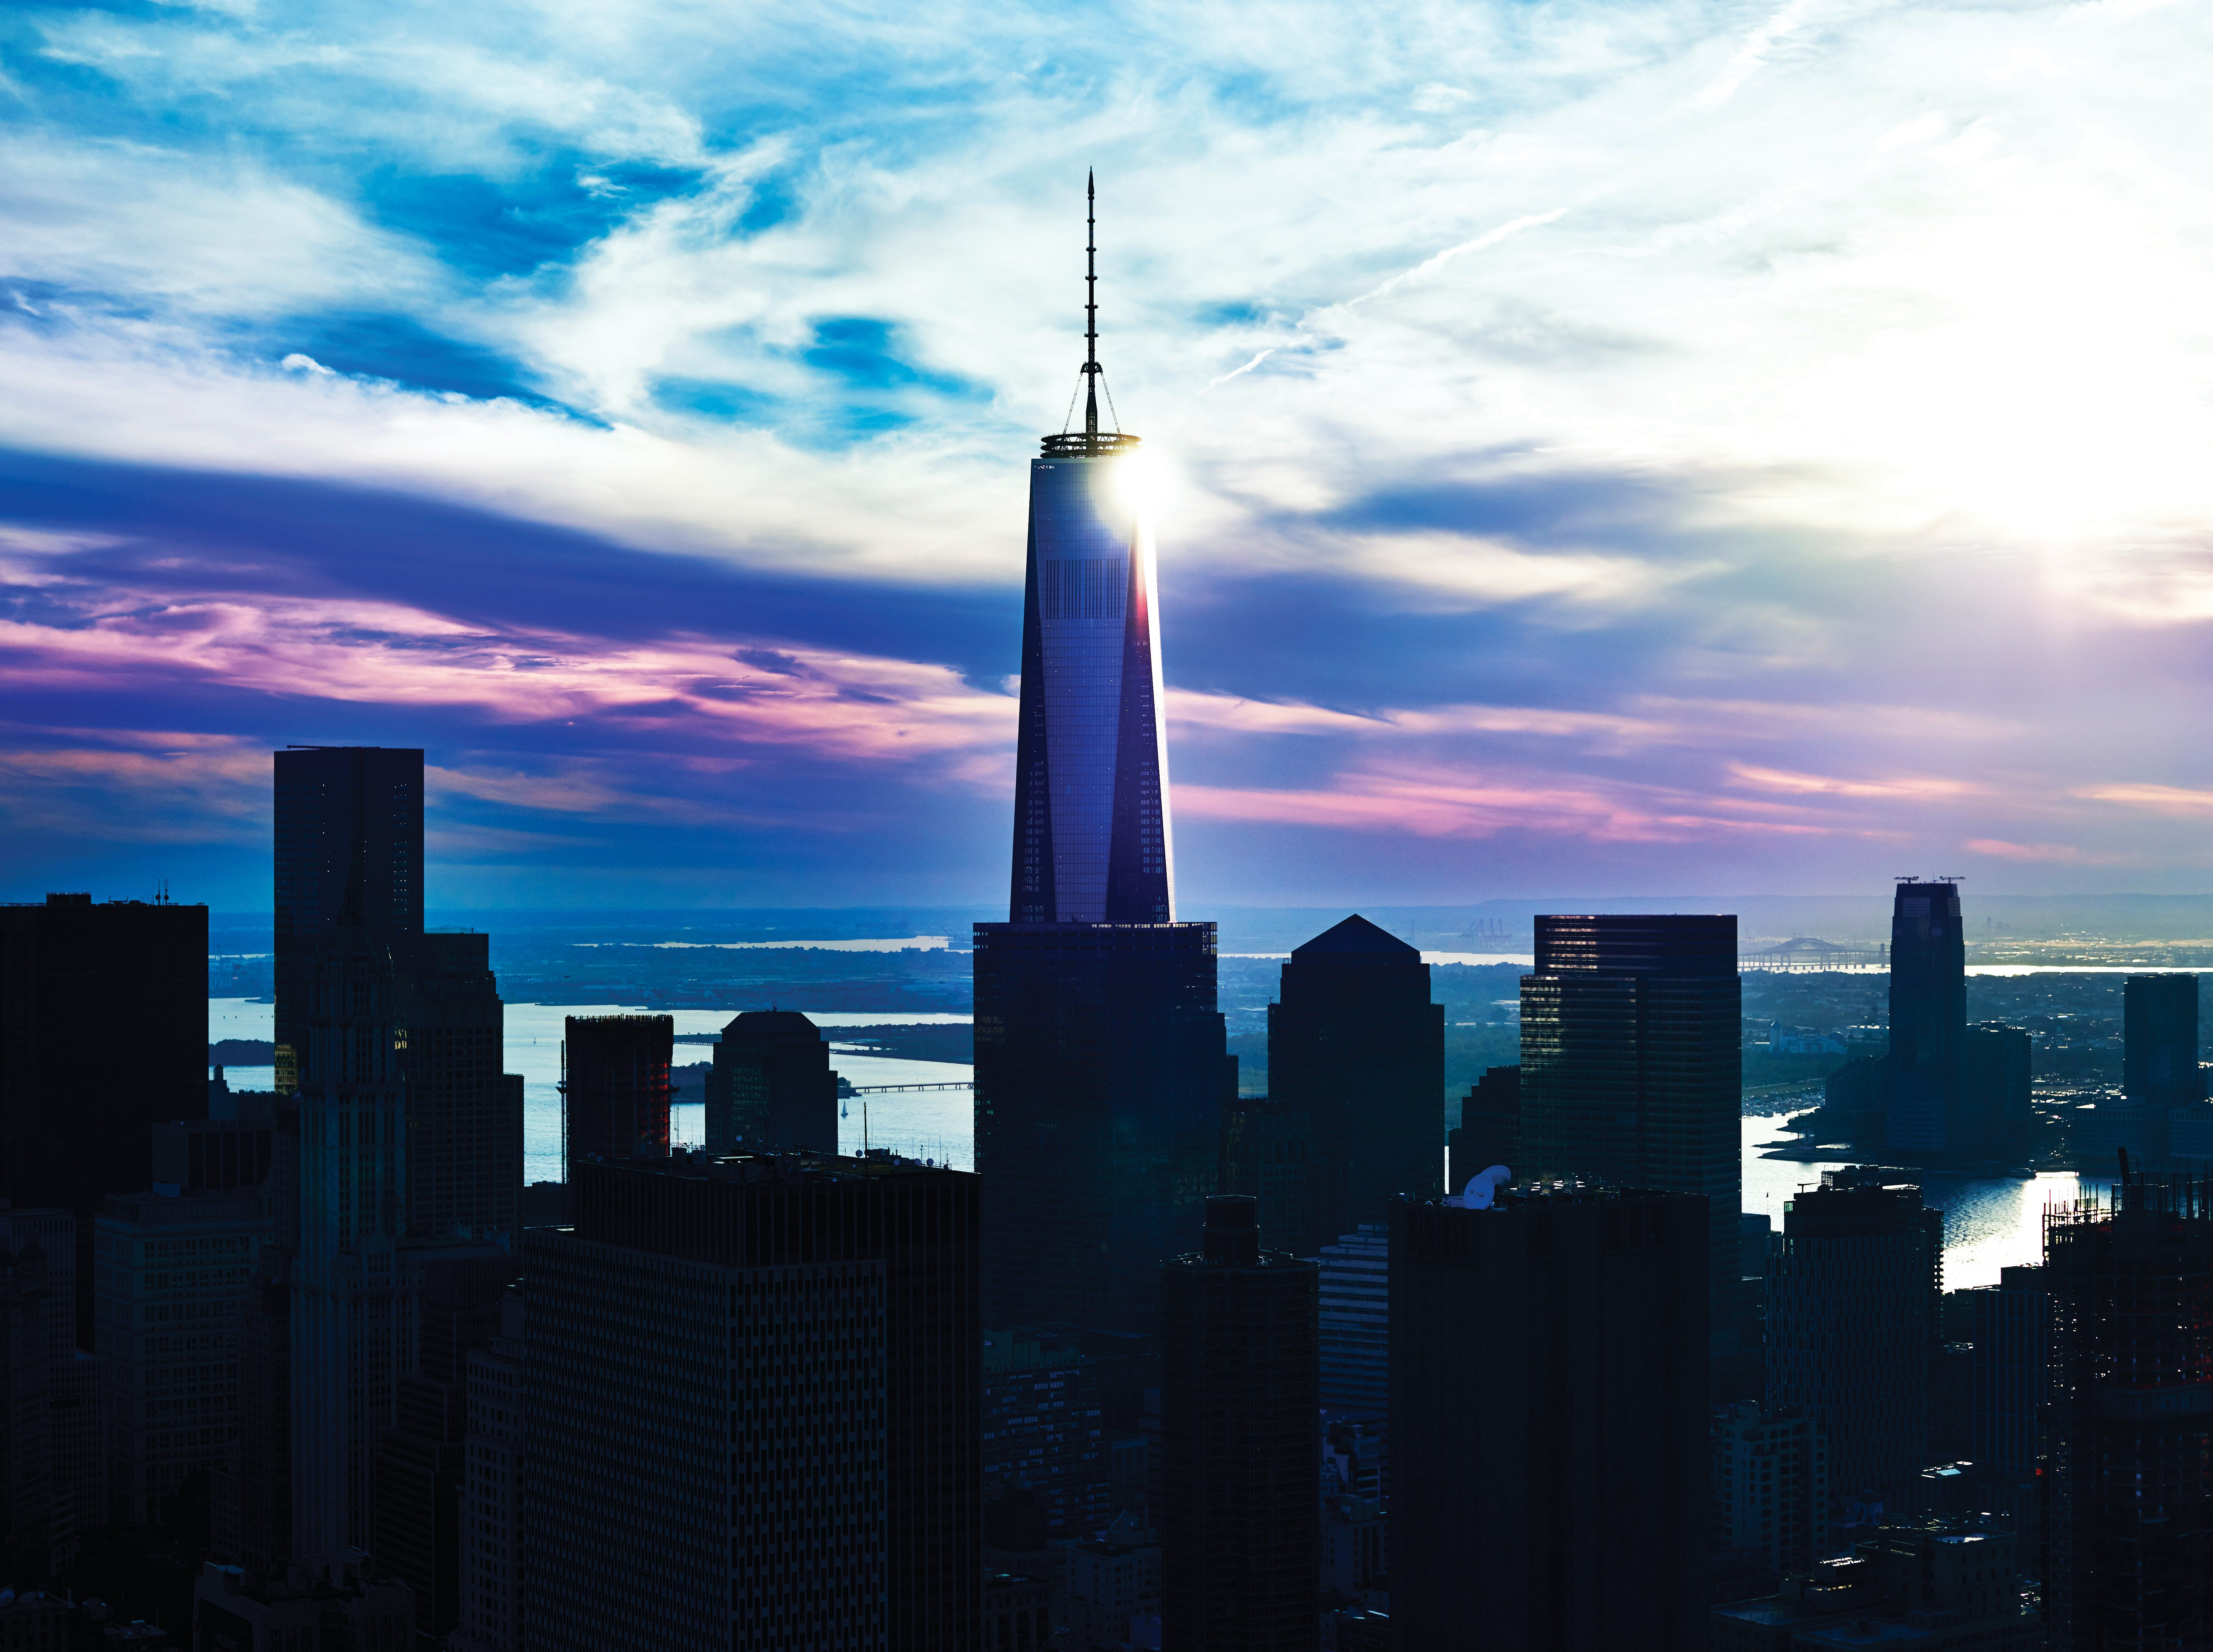 The sun glints off the wall of One World Trade Center in New York.